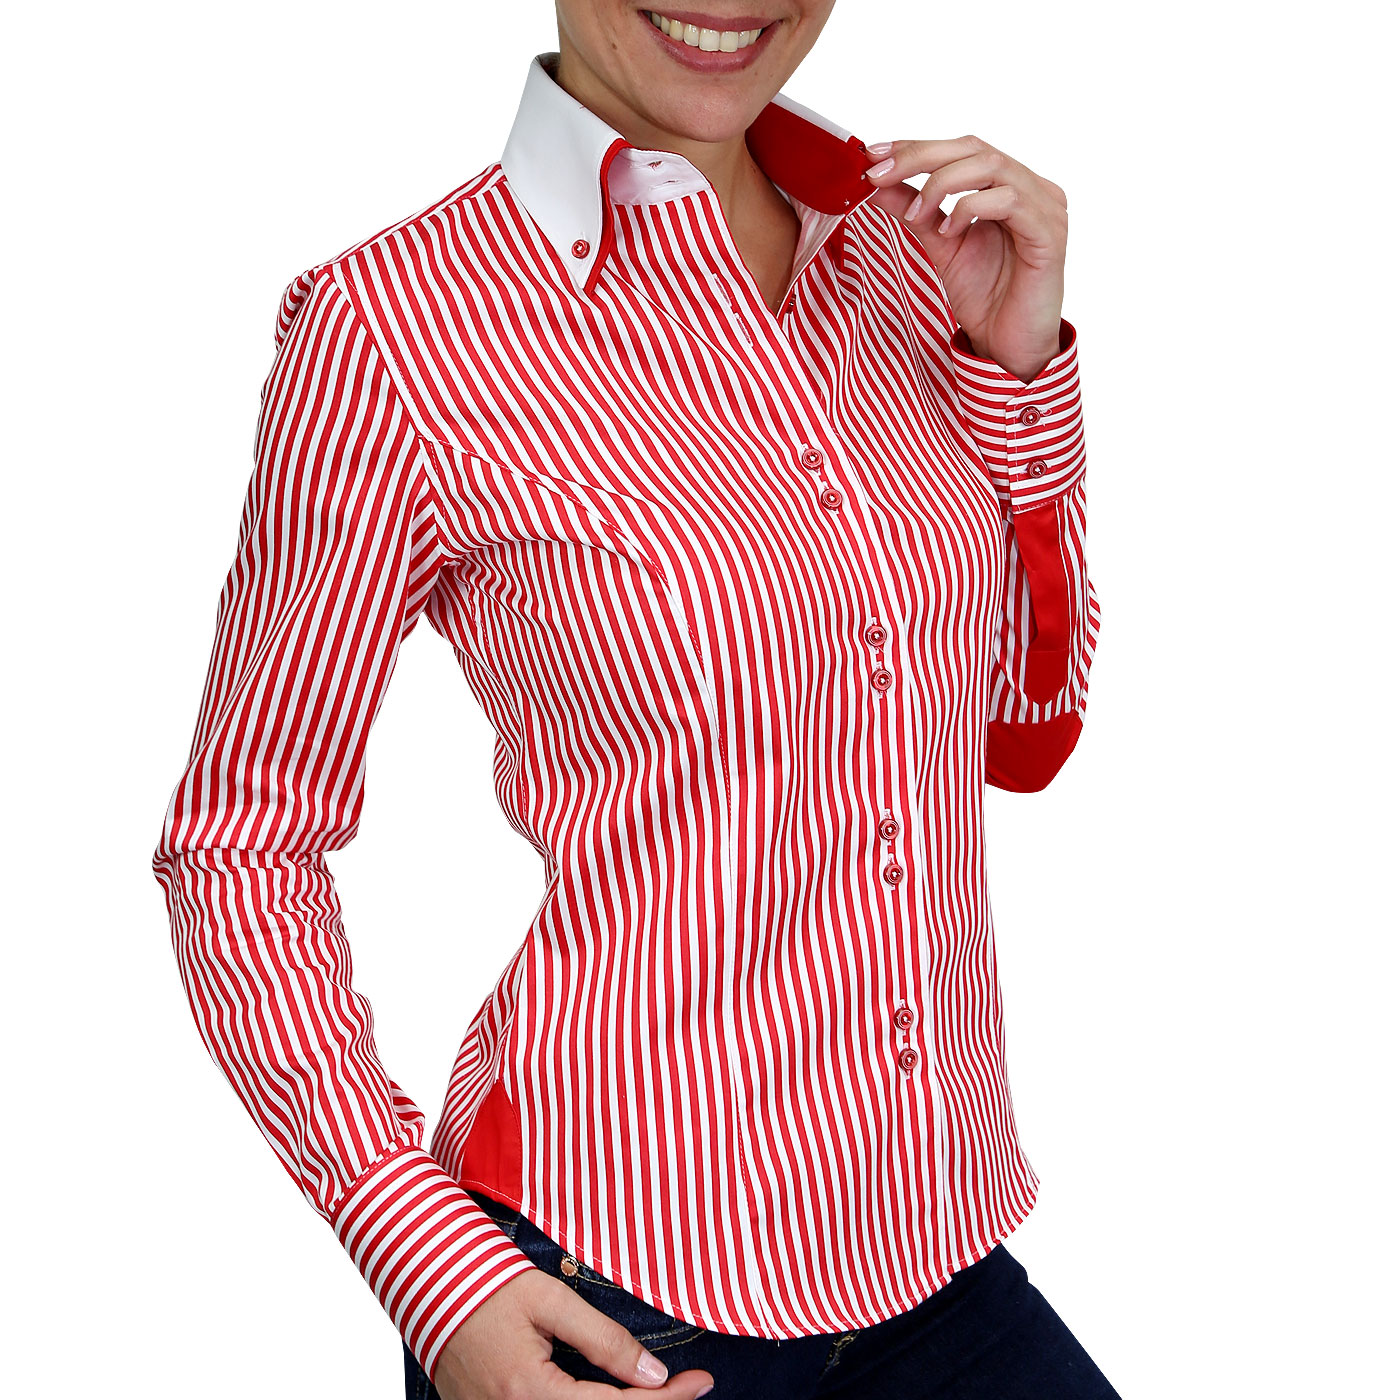 Borsalino woman red shirt